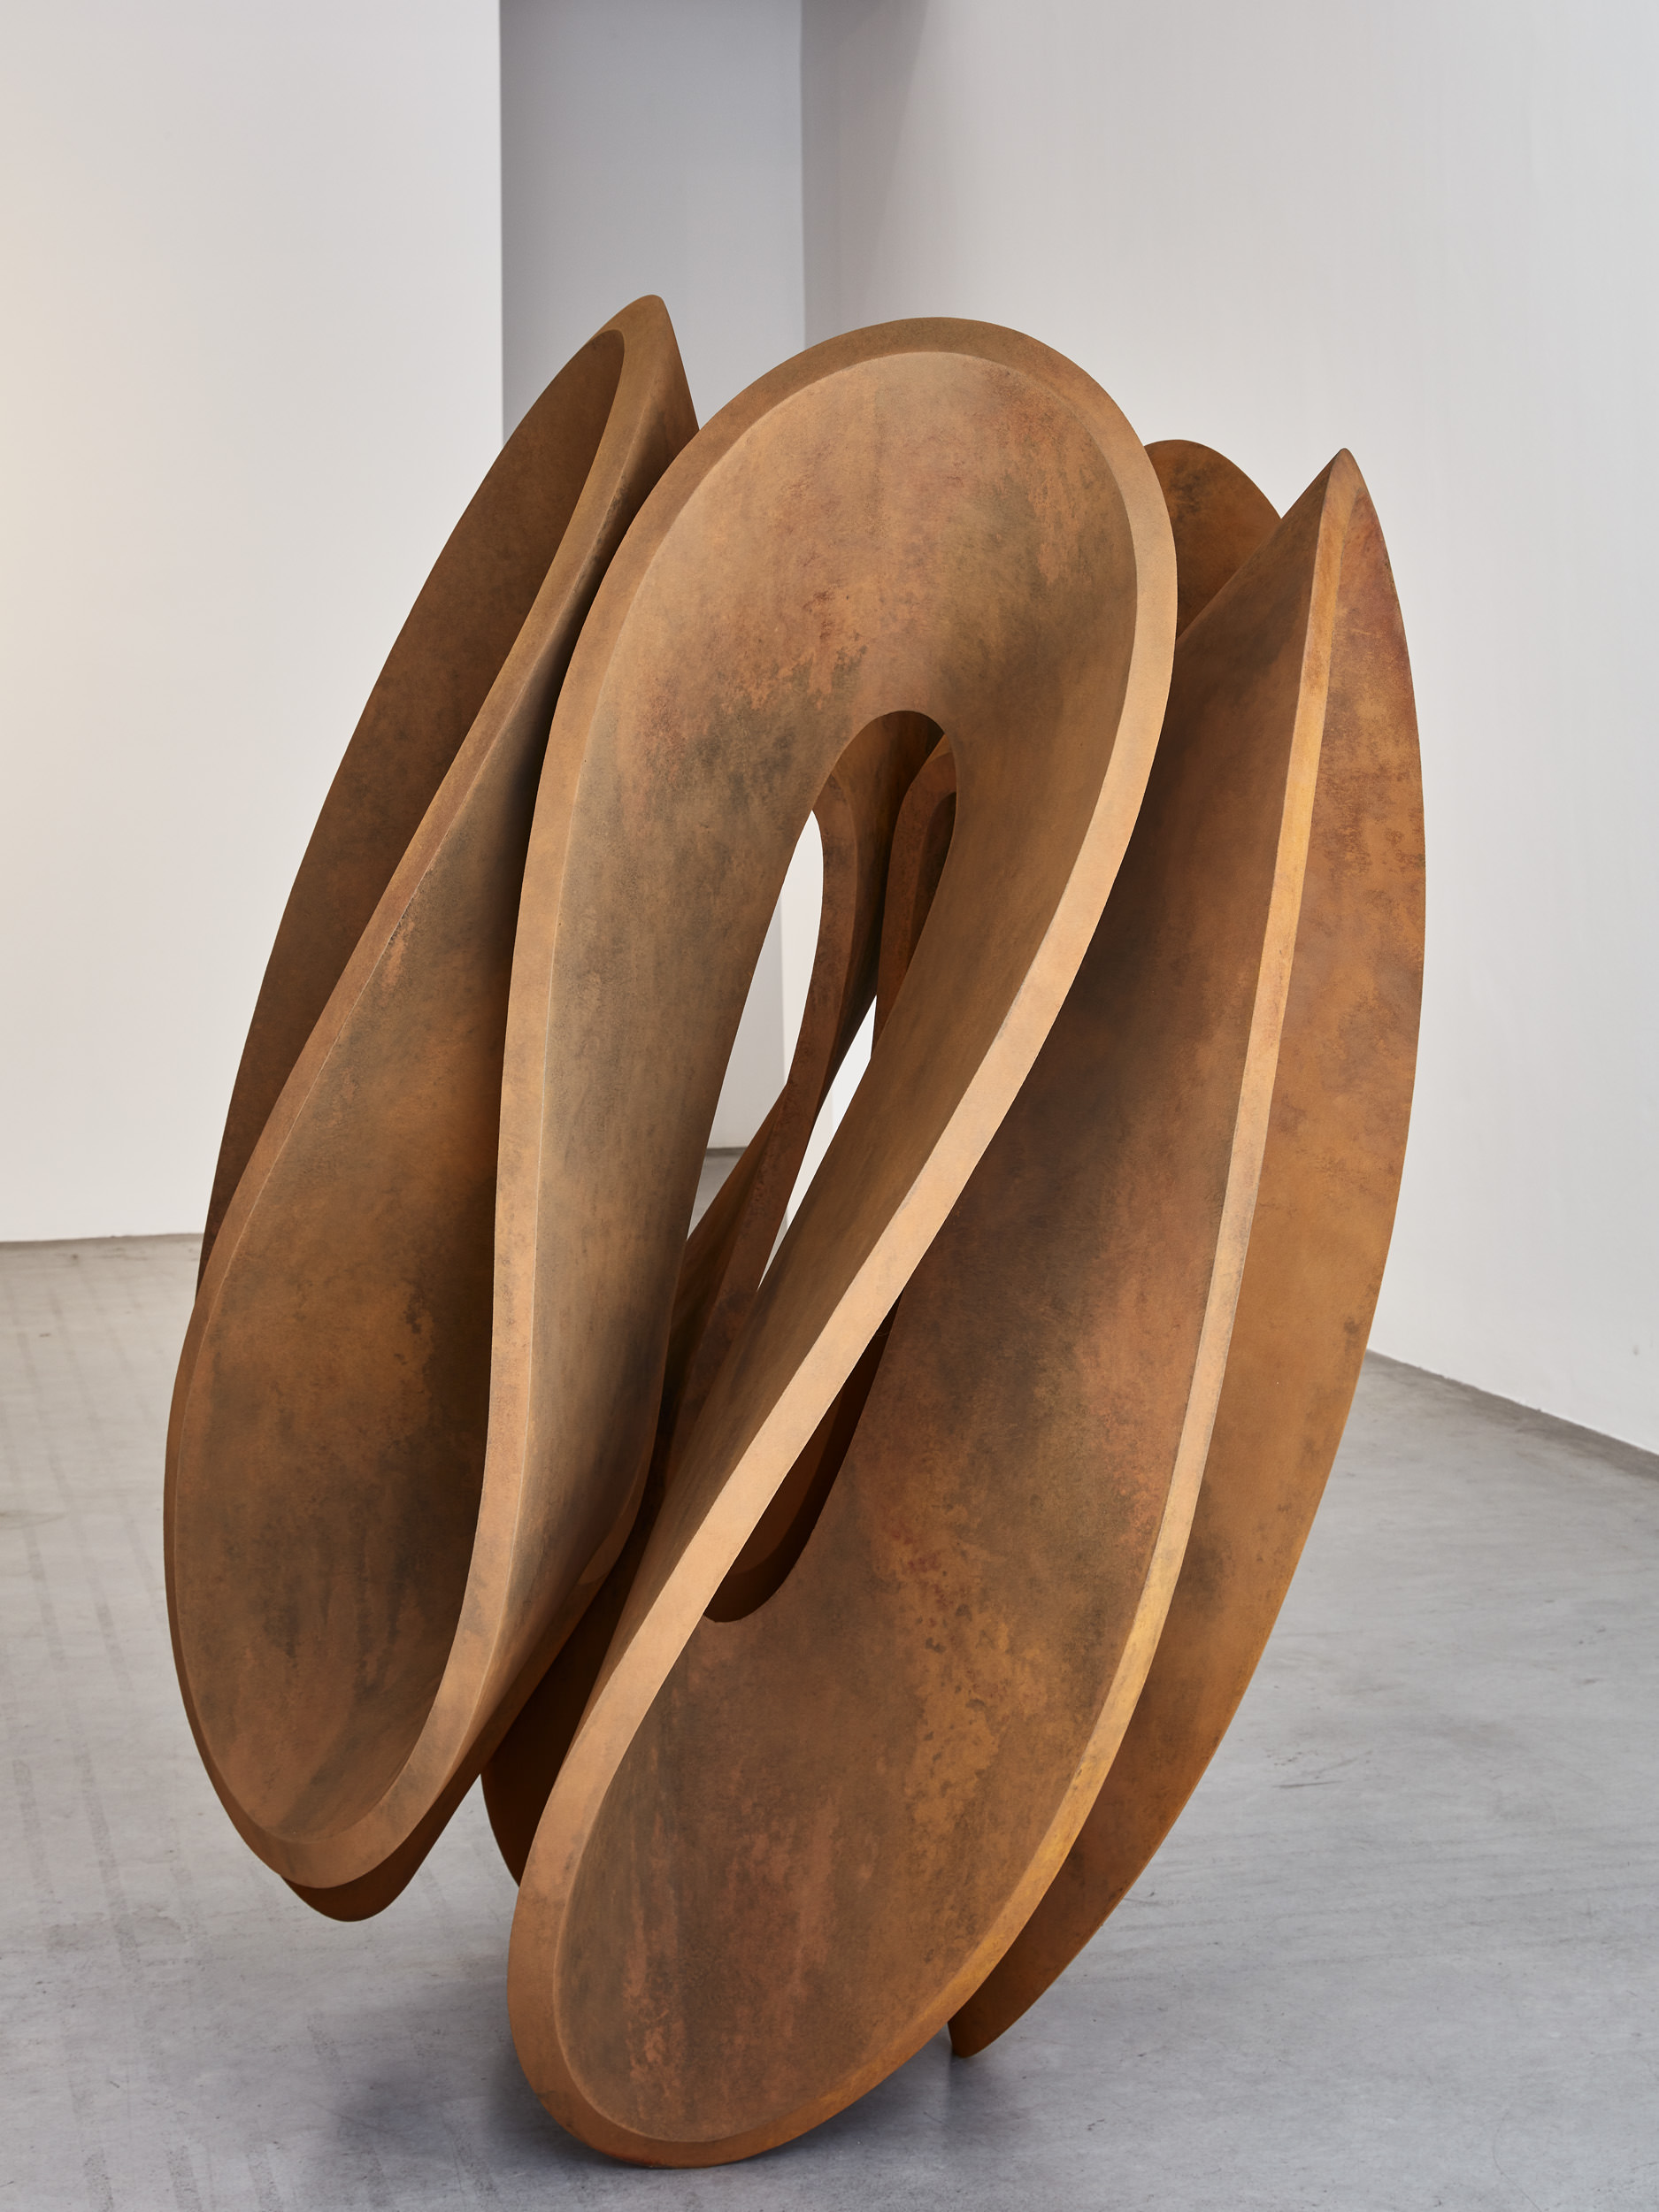 Gianpietro Carlesso, Essenza, 2017 corten steel, 155 x 113 x 108 cm Ed. 3 of 8